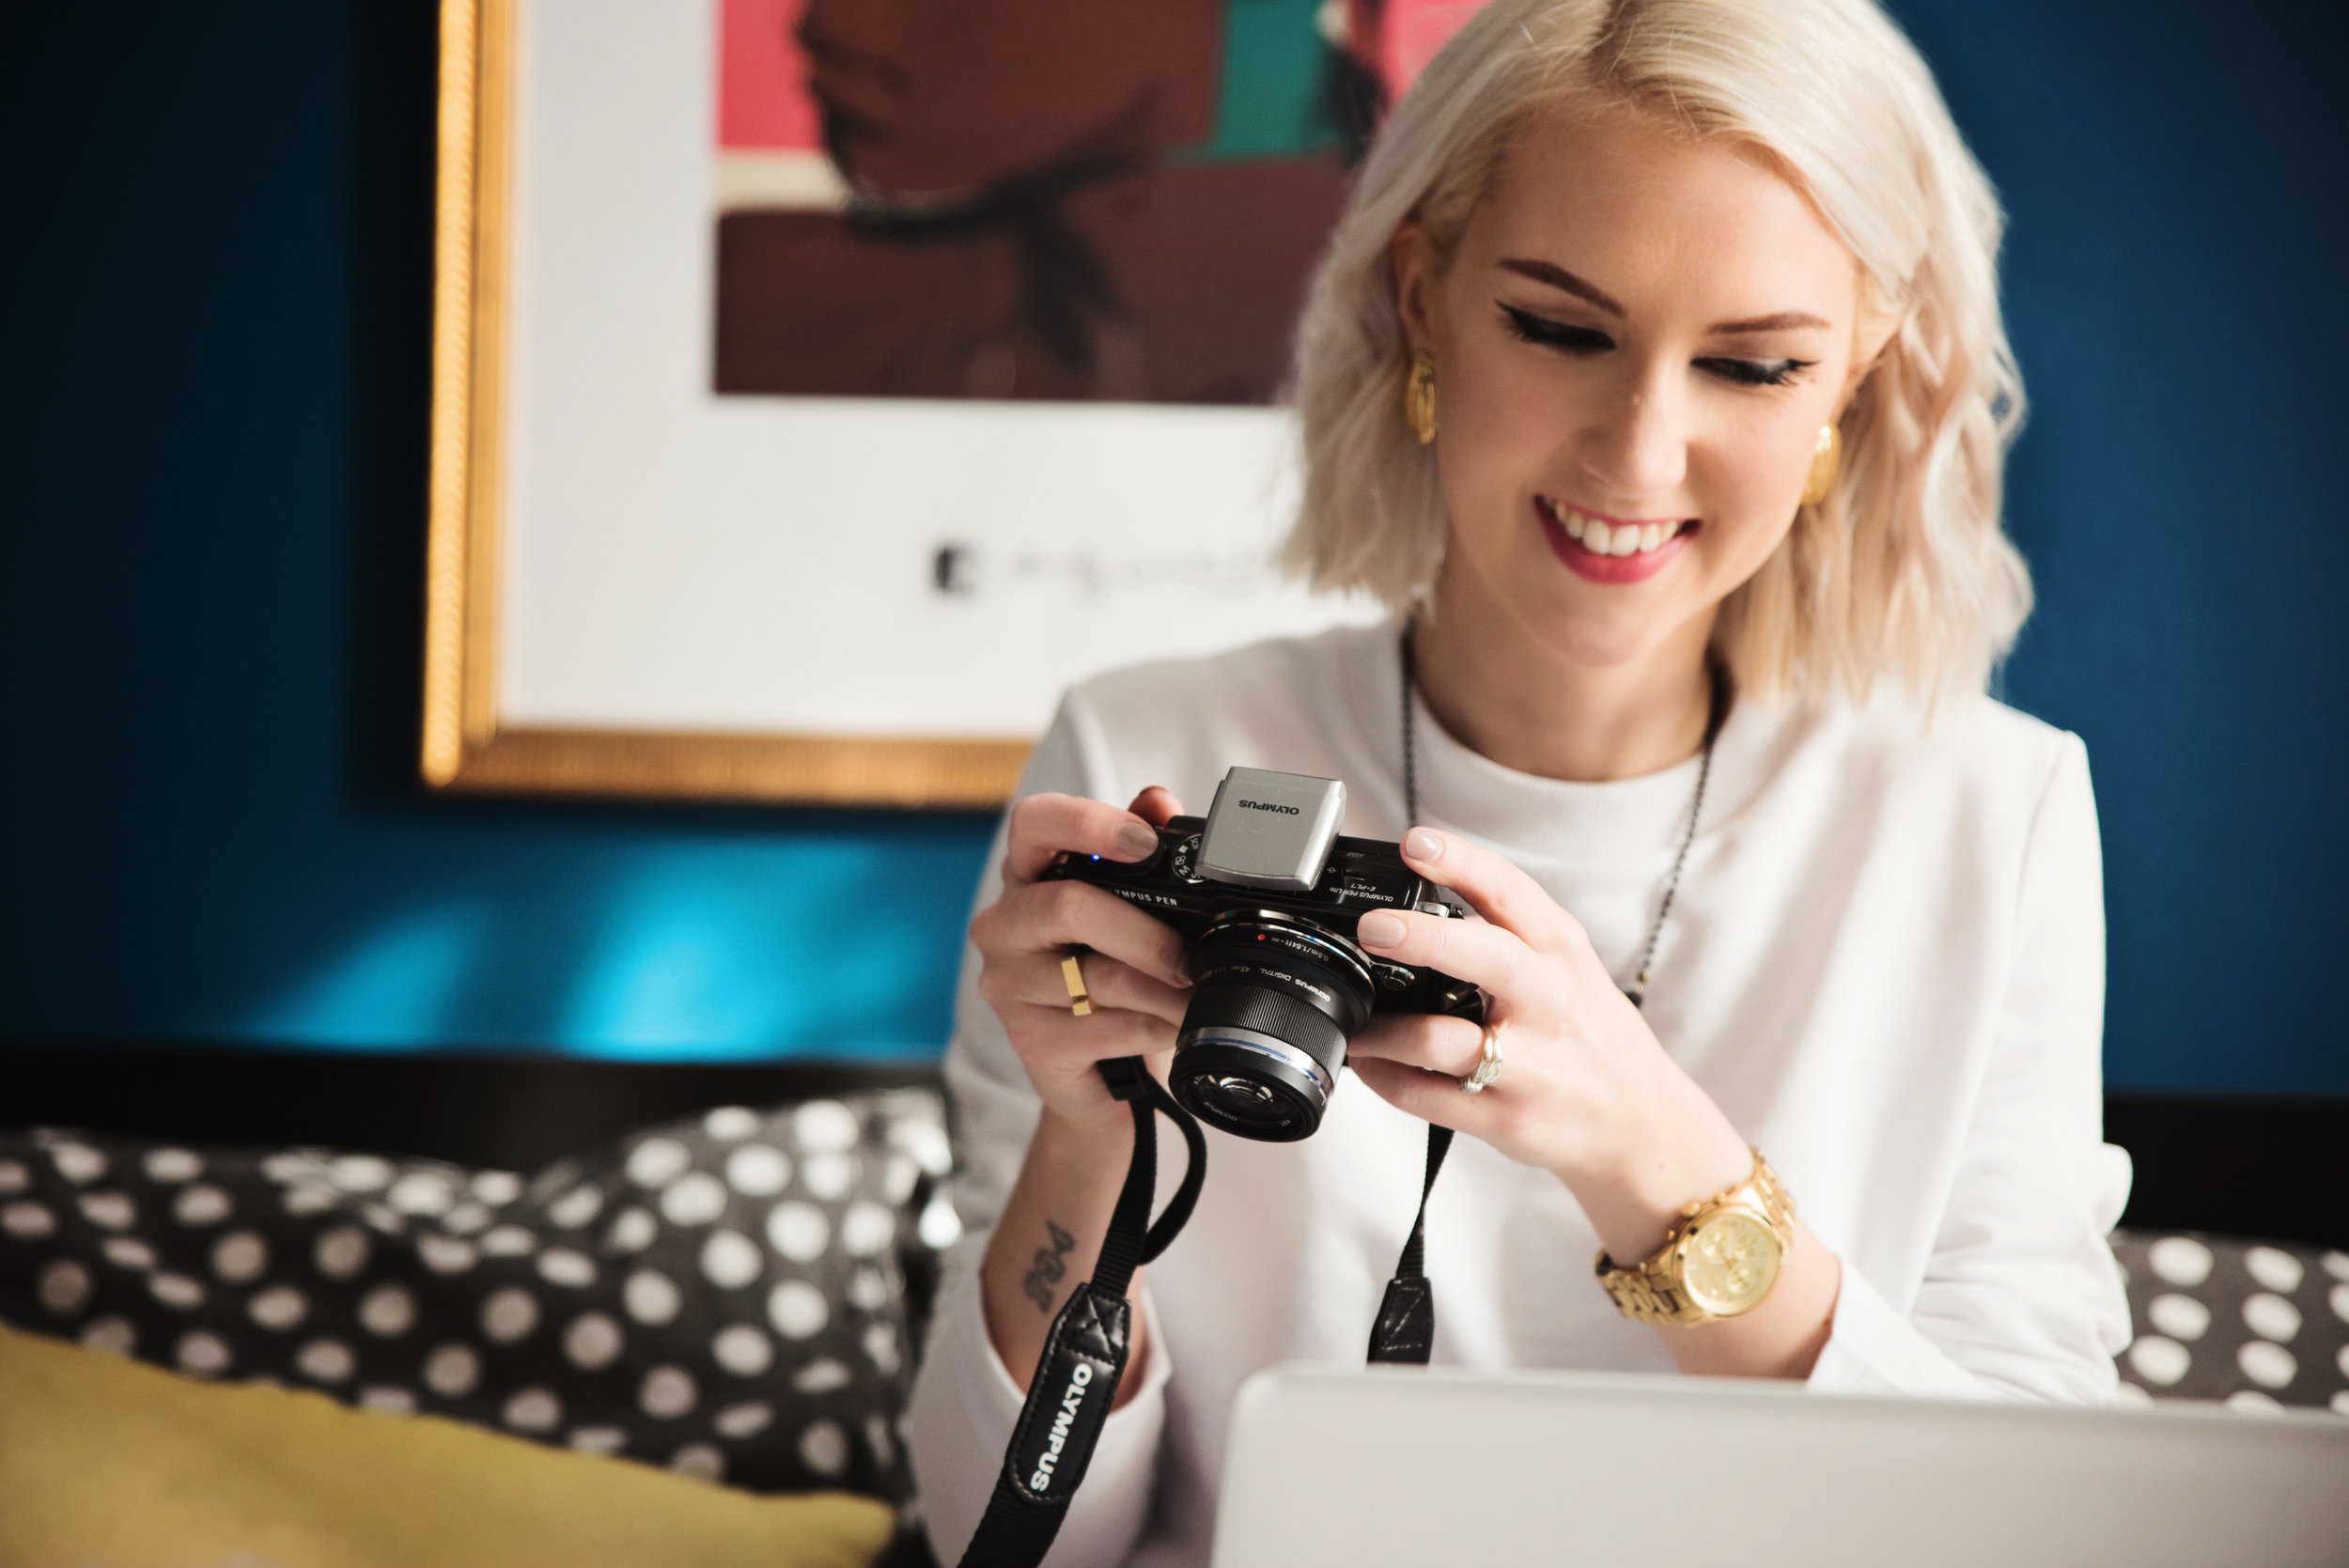 WHAT IS THE BEST CAMERA FOR A BLOGGER, CONTENT CREATOR OR INFLUENCER?